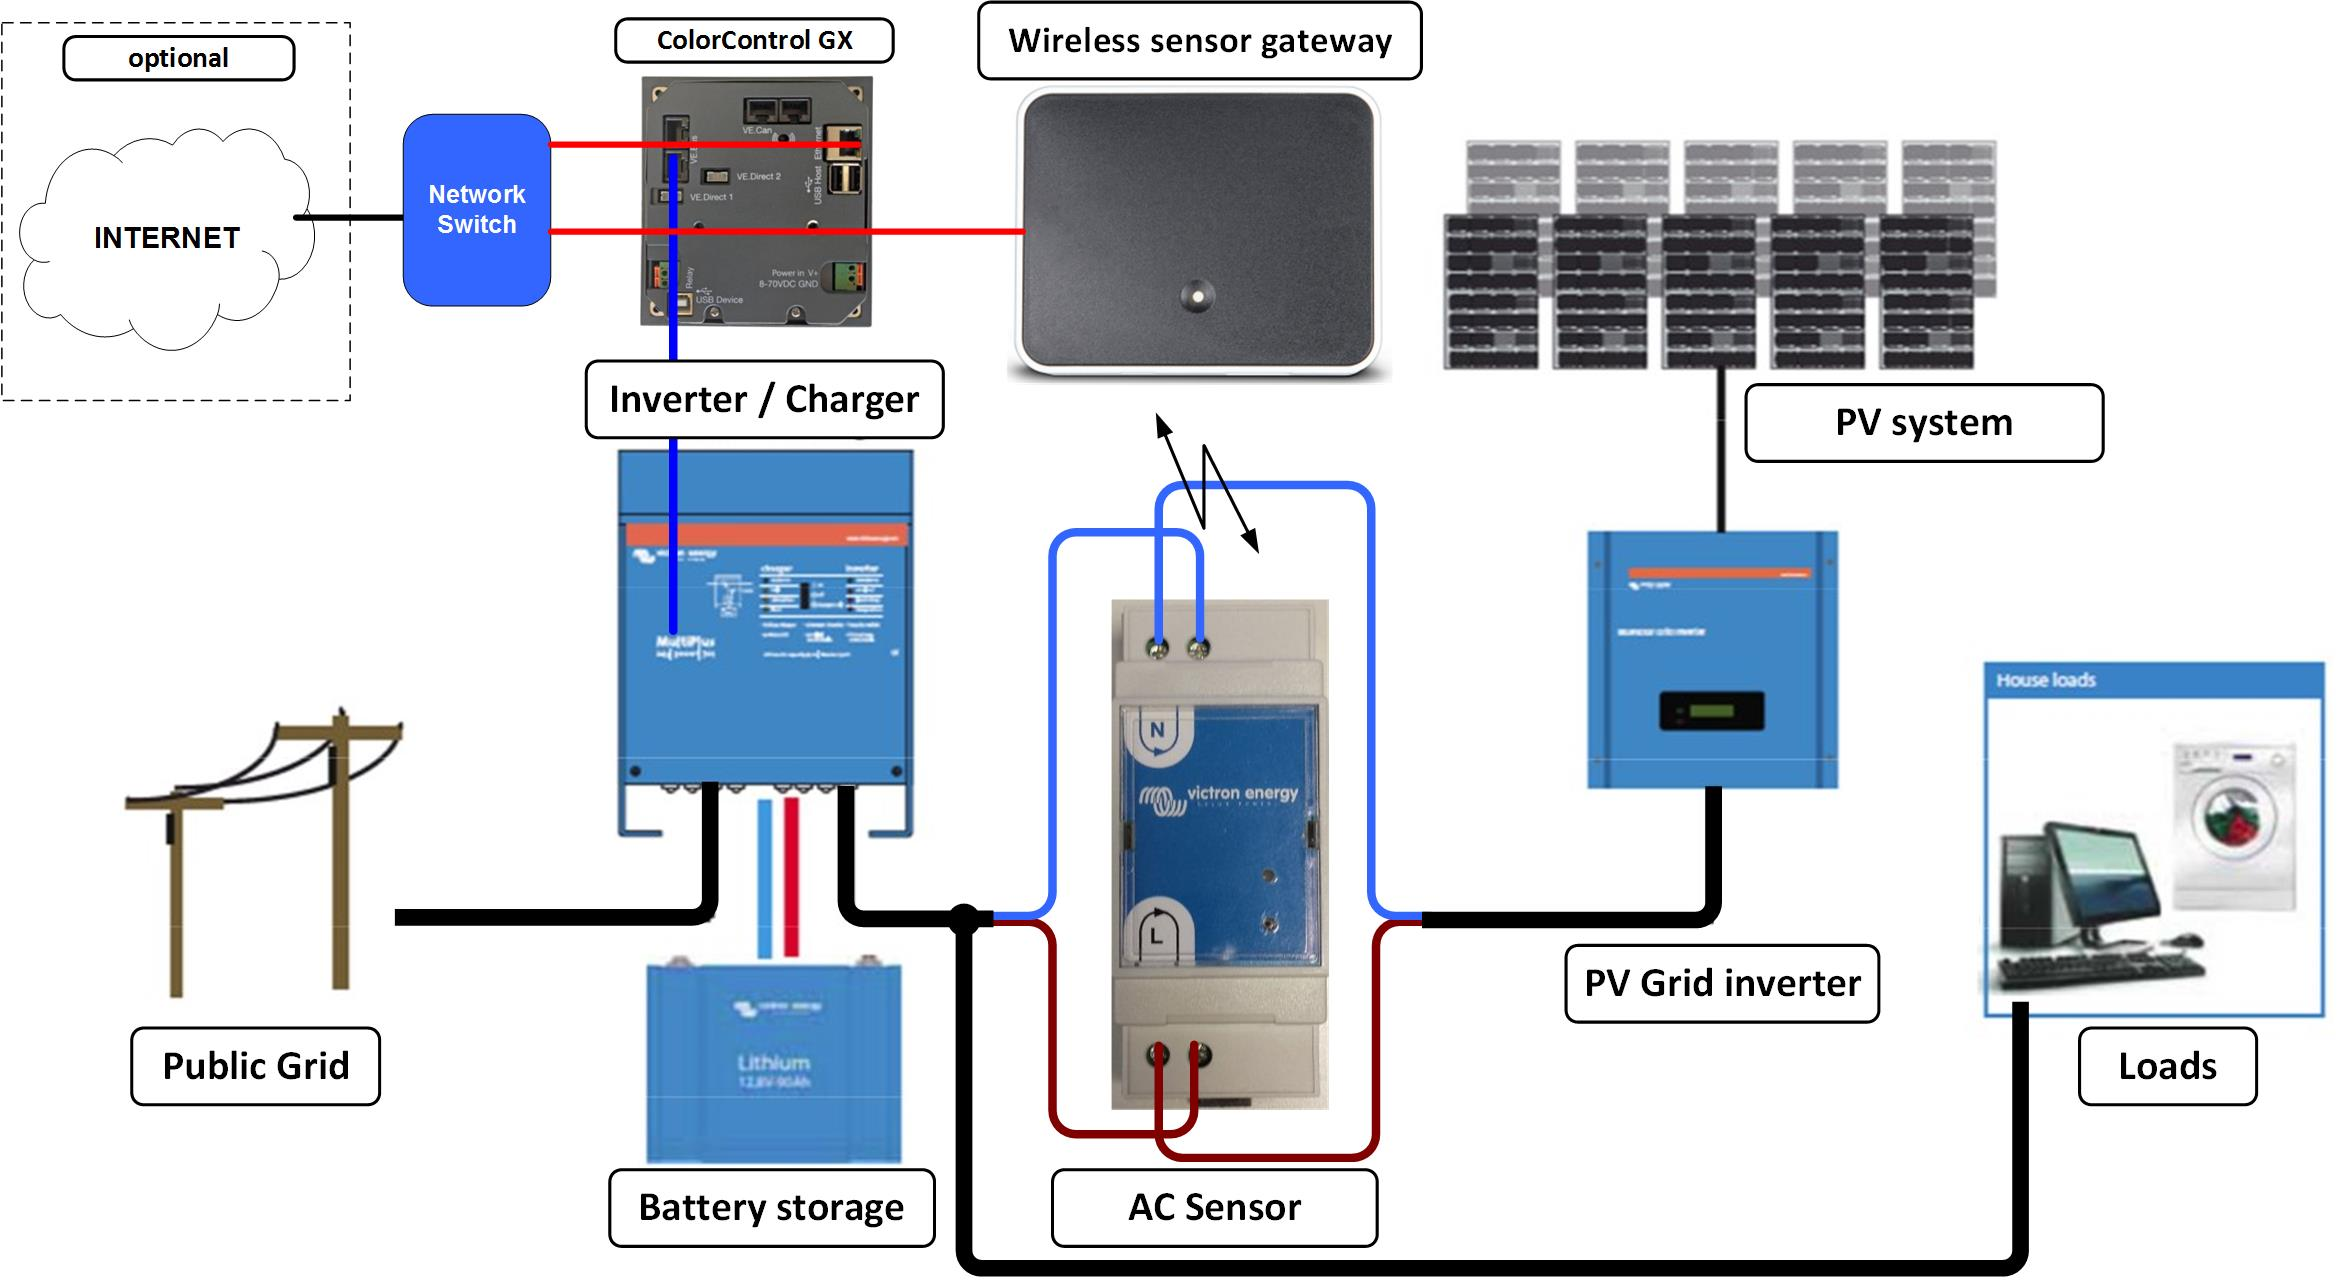 ccgx quby_gateway_schema?w=850&tok=8bbaf9 wireless ac sensor manual [victron energy] victron inverter wiring diagram at gsmx.co